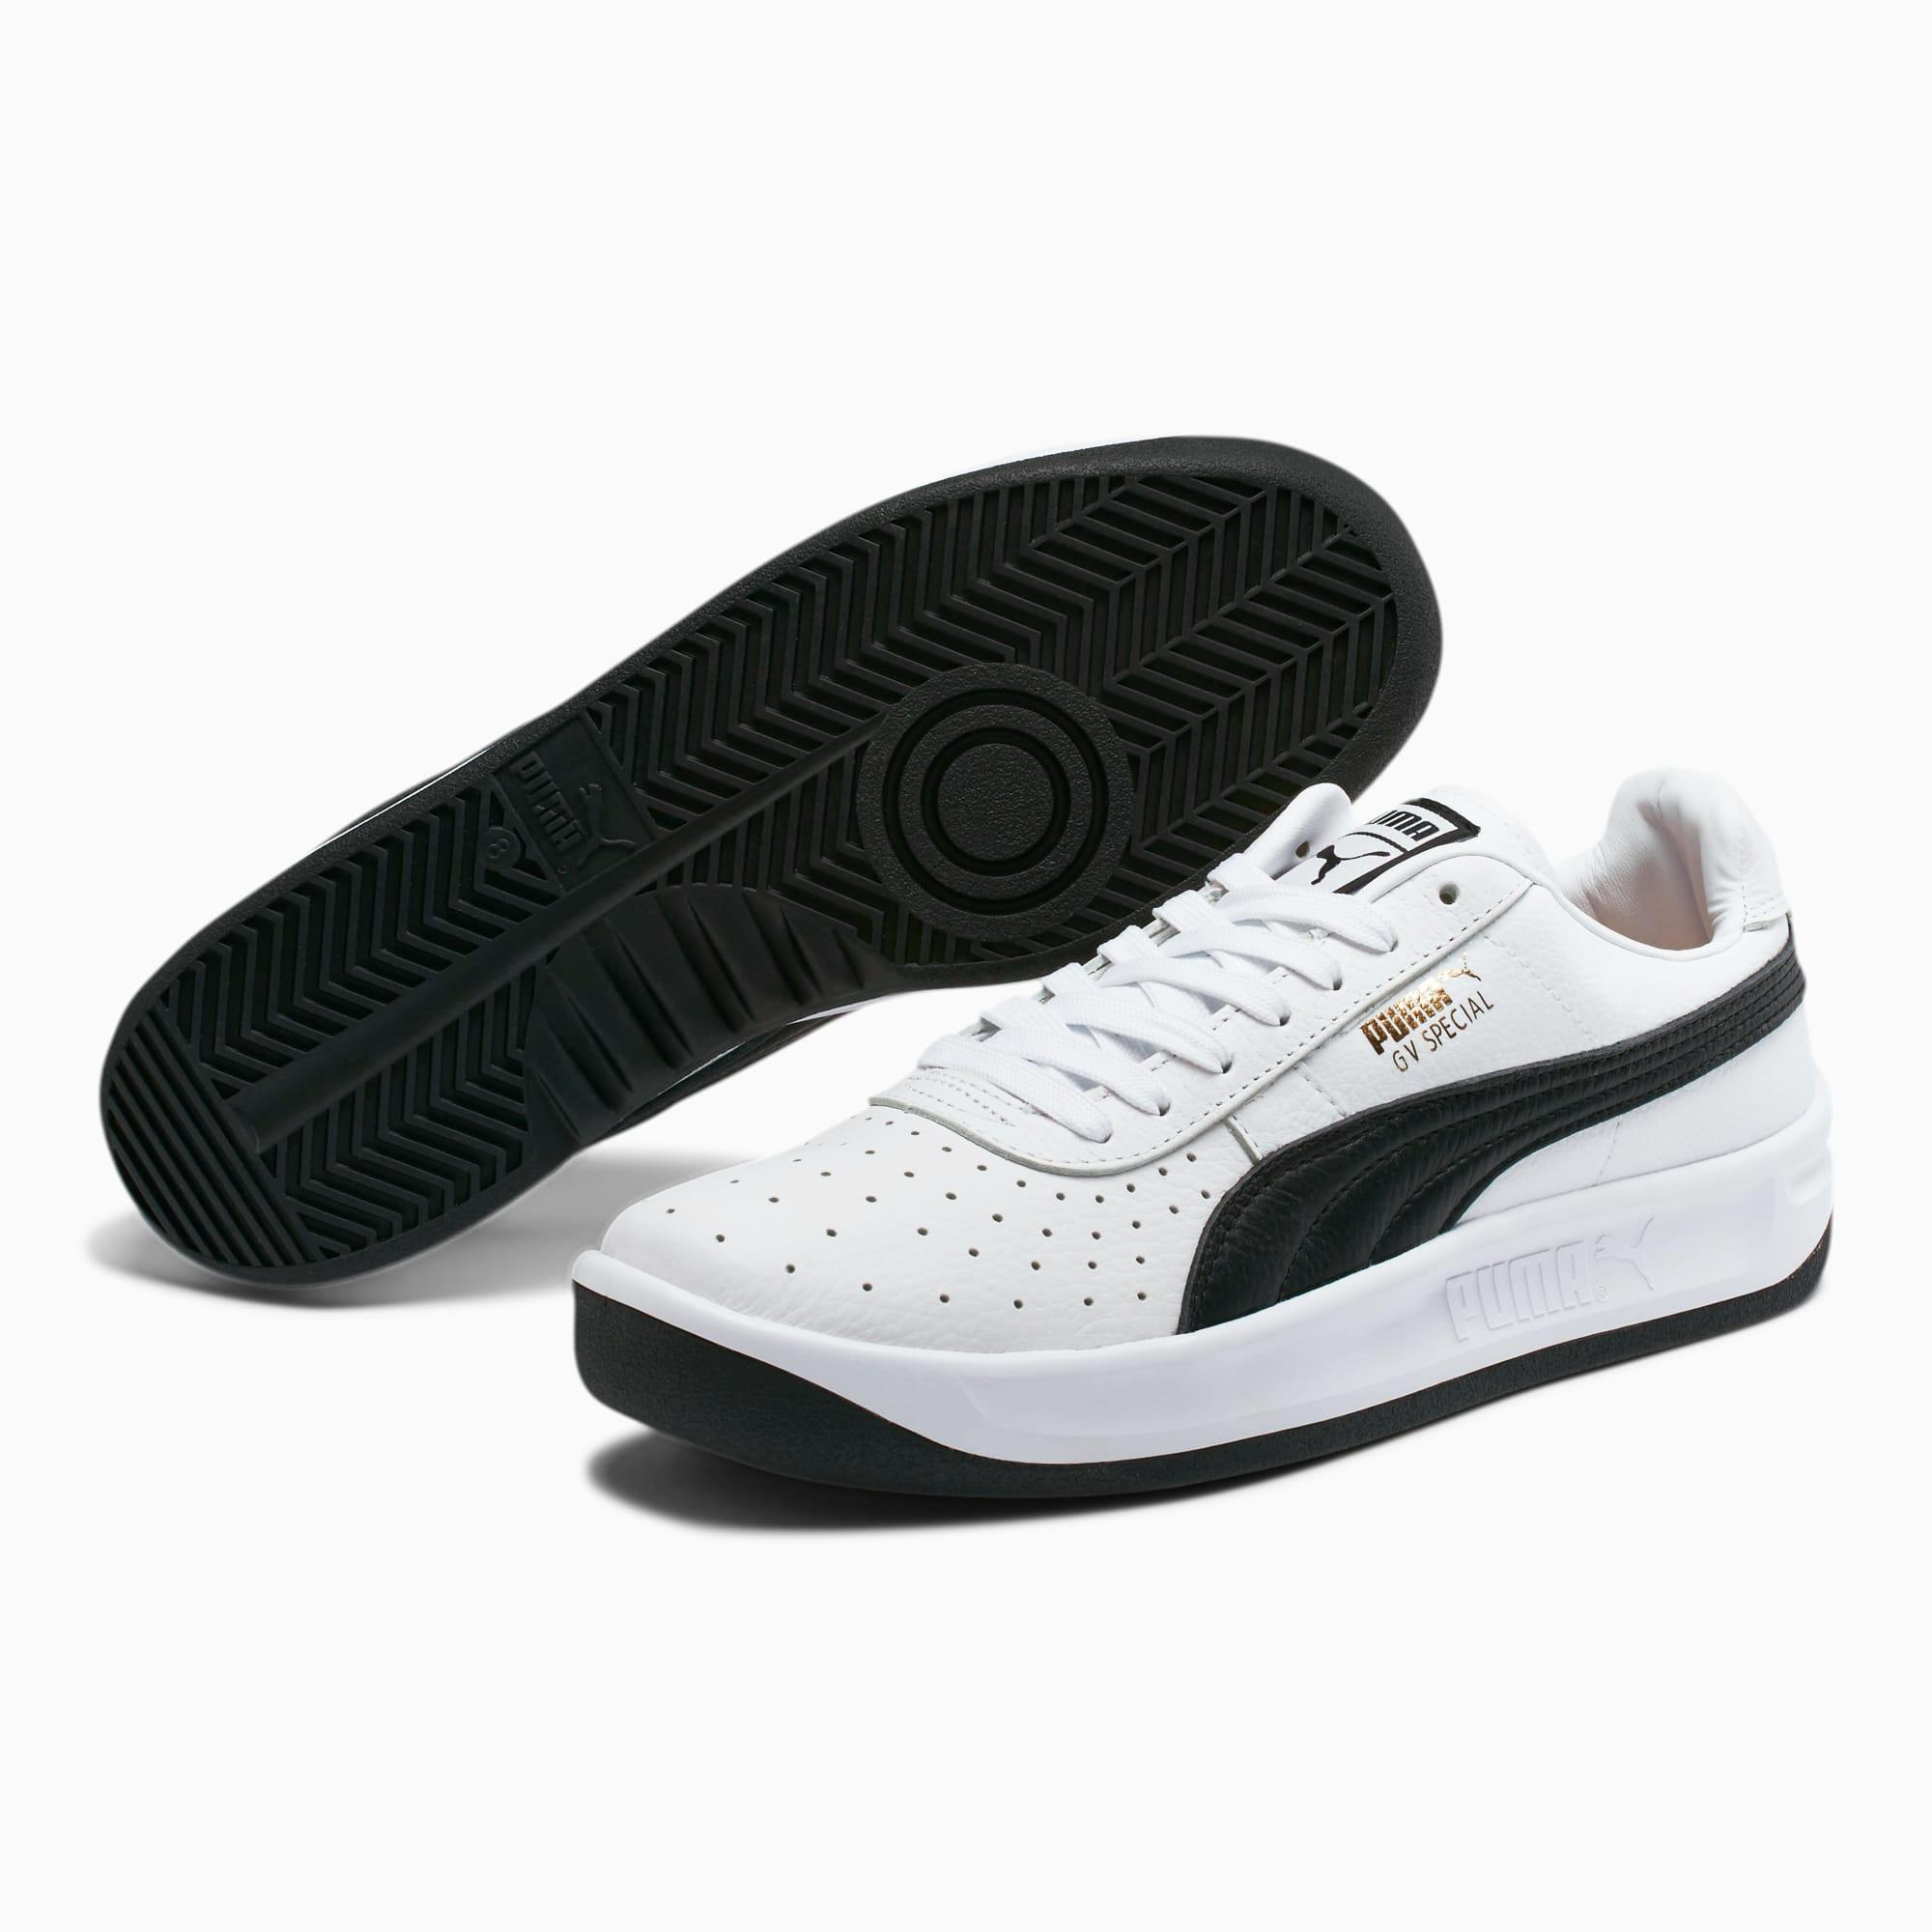 PUMA Leather Gv Special Sneakers in